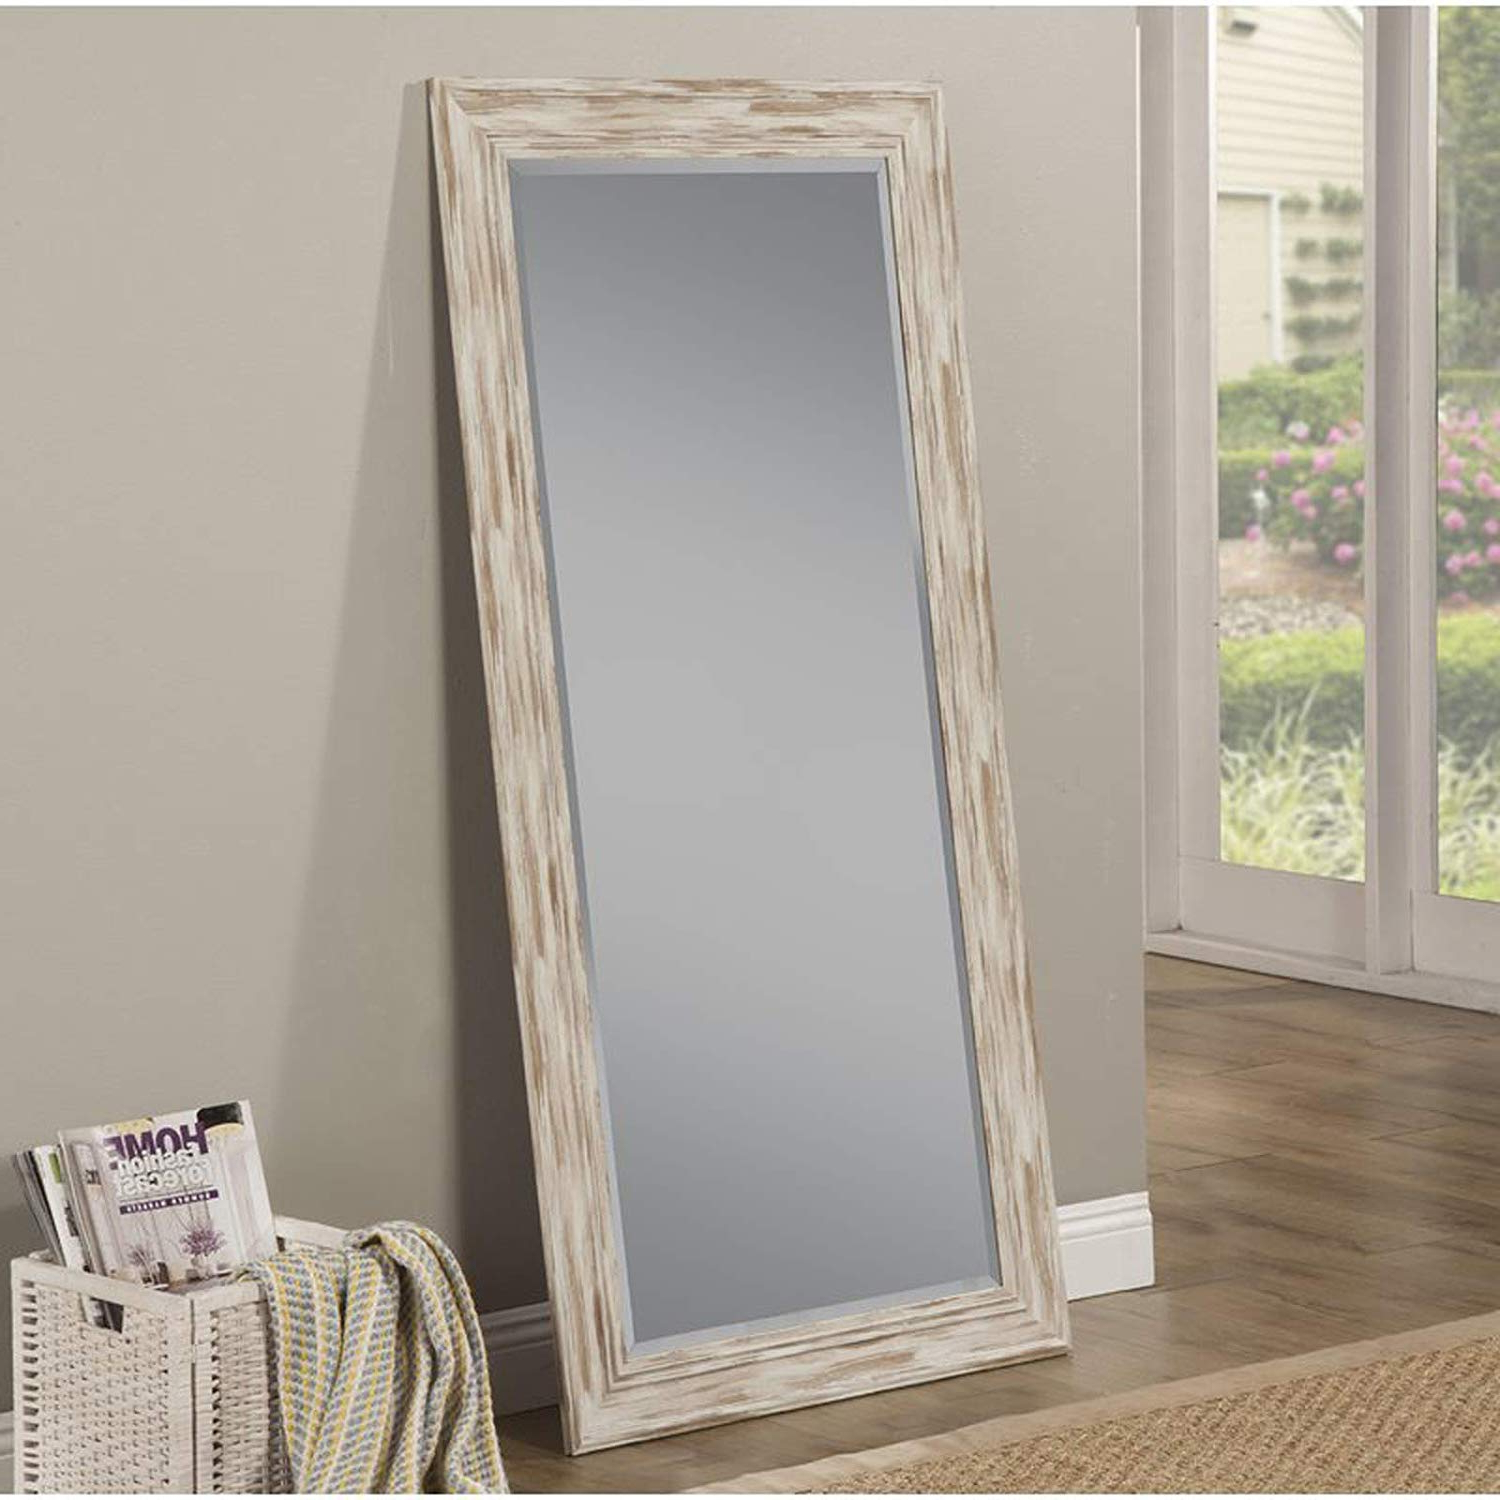 Most Recent Full Wall Mirrors For Full Length Wall Mirror – Rustic Rectangular Shape Horizontal & Vertical Mirror – Can Be Use In Living Room, Bedroom, Entryway Or Bathroom (antique (View 3 of 20)